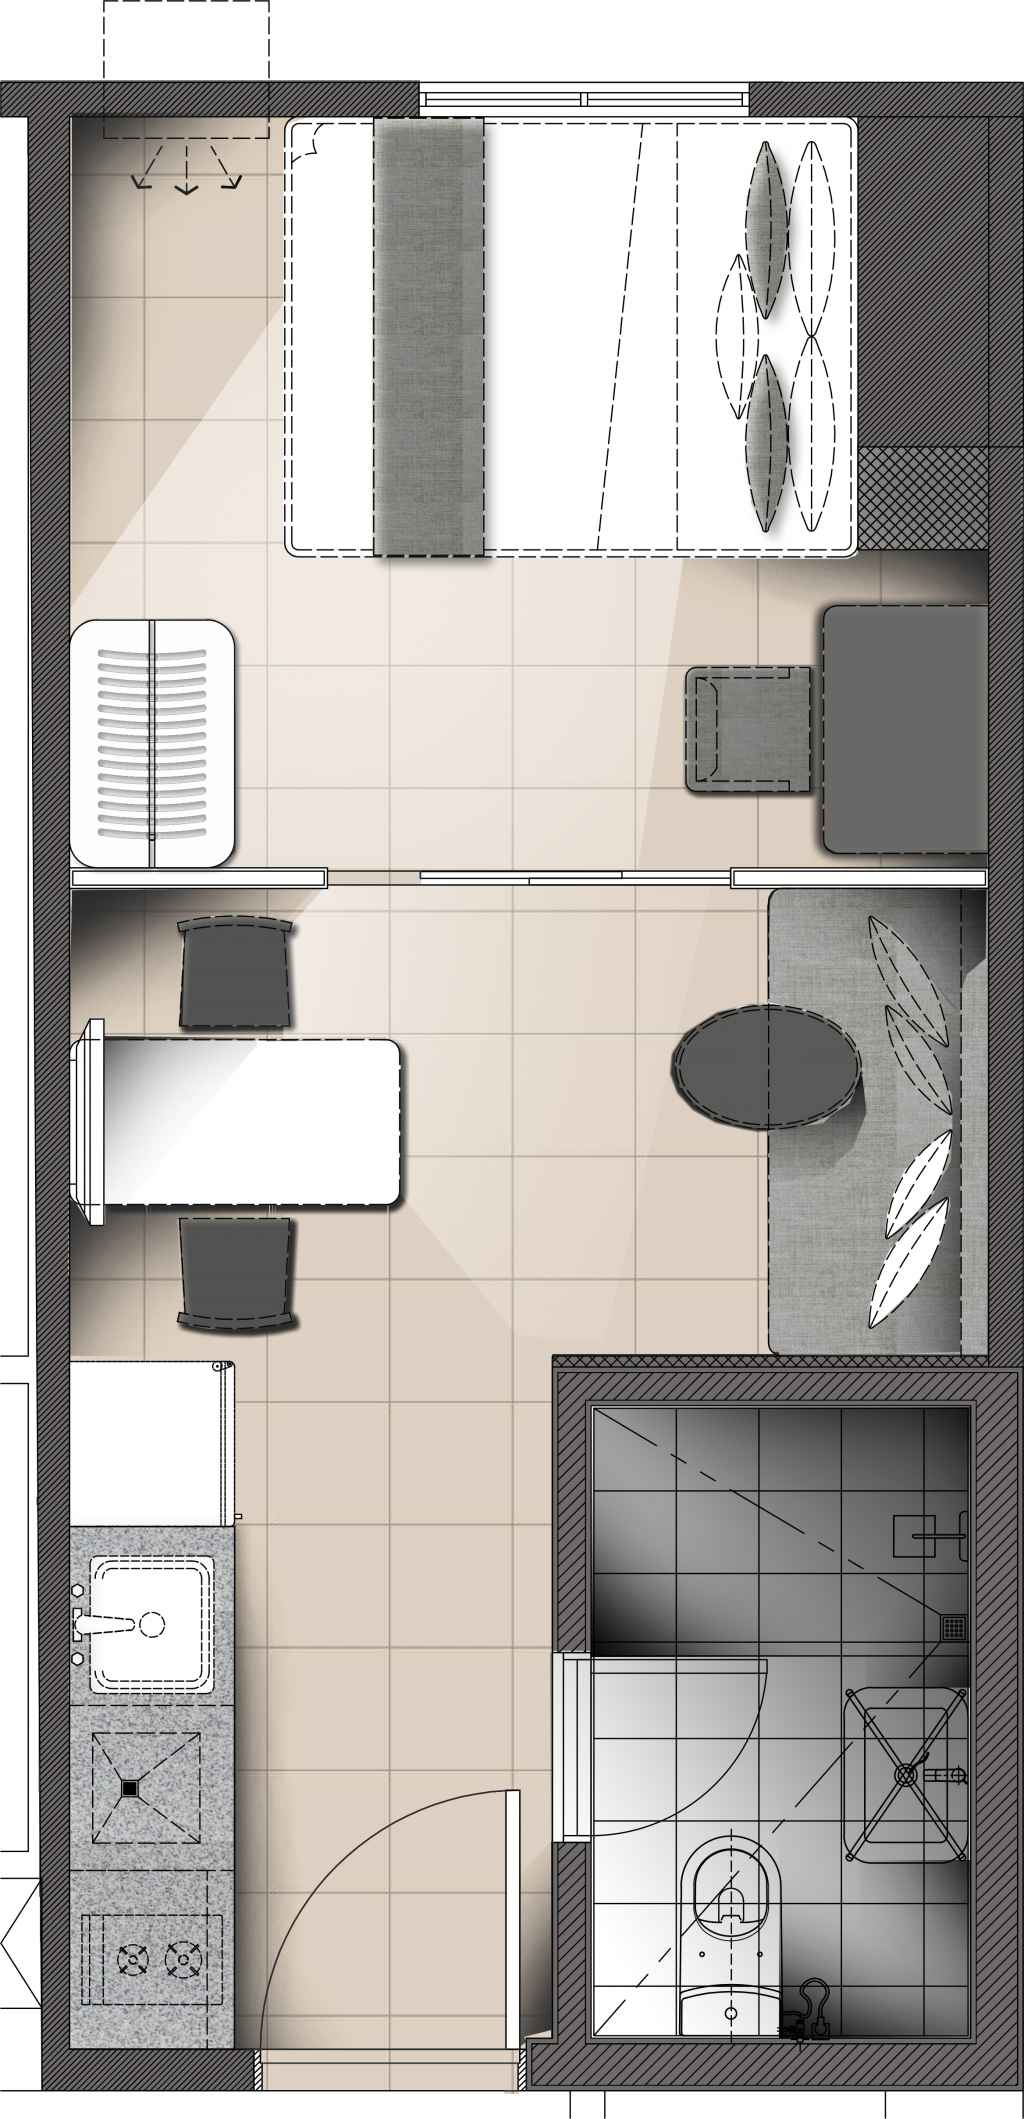 Torre Lorenzo - The Suites at TLM - 1BR Unit